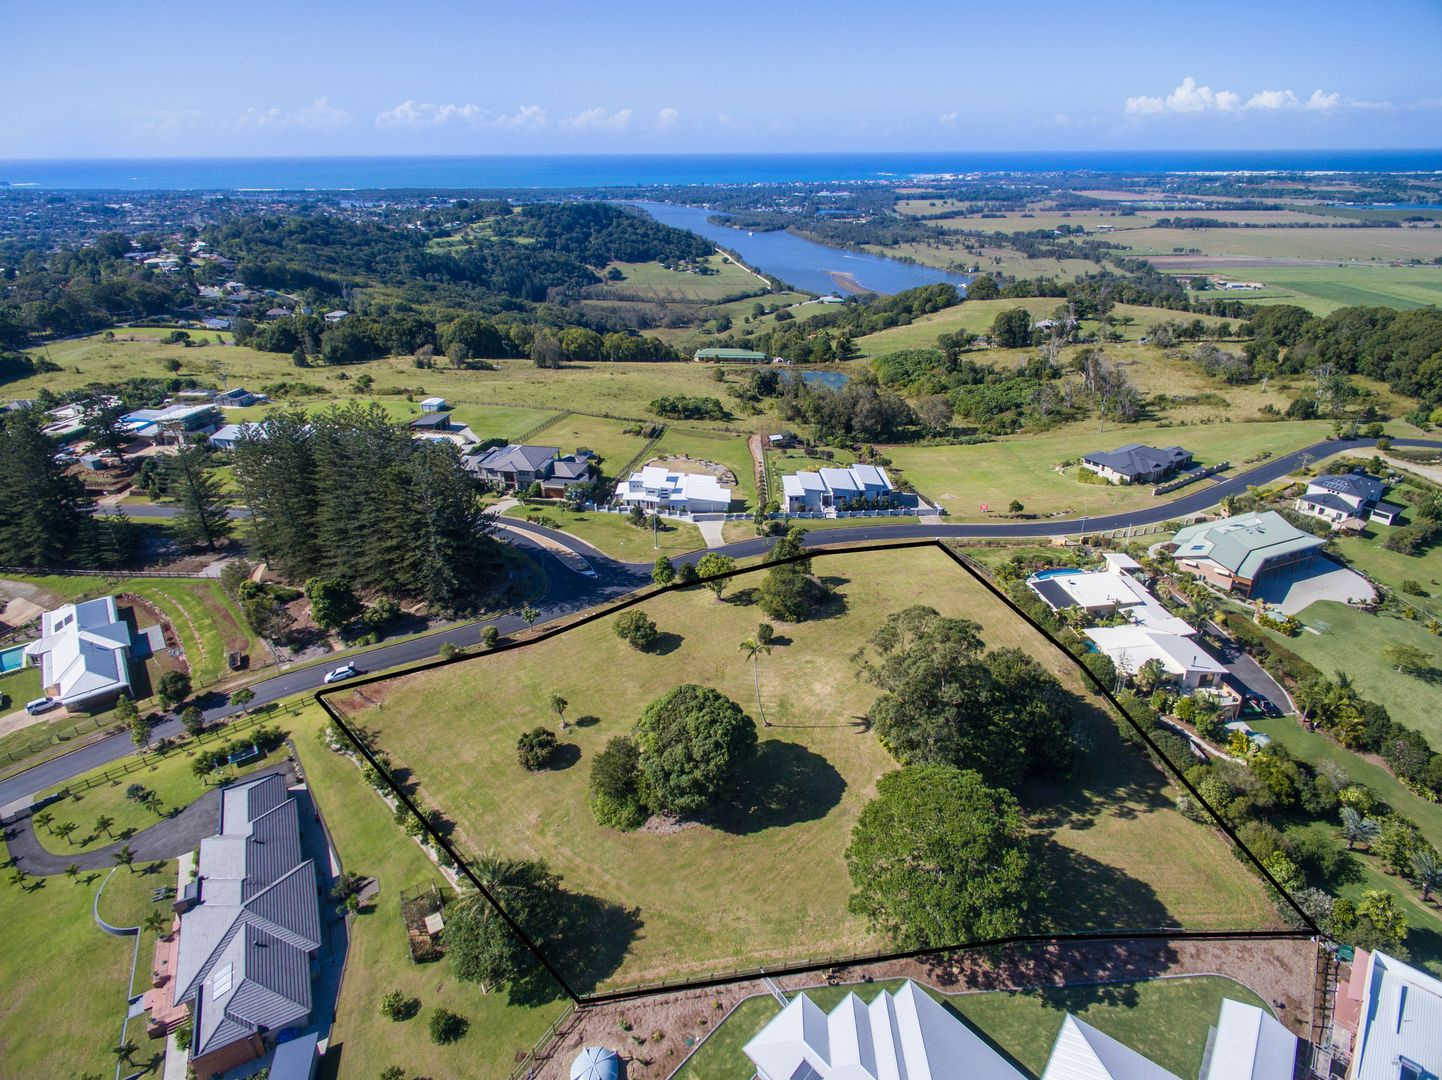 Lot 30, 6 Sunnycrest Drive, Terranora NSW 2486, Image 0